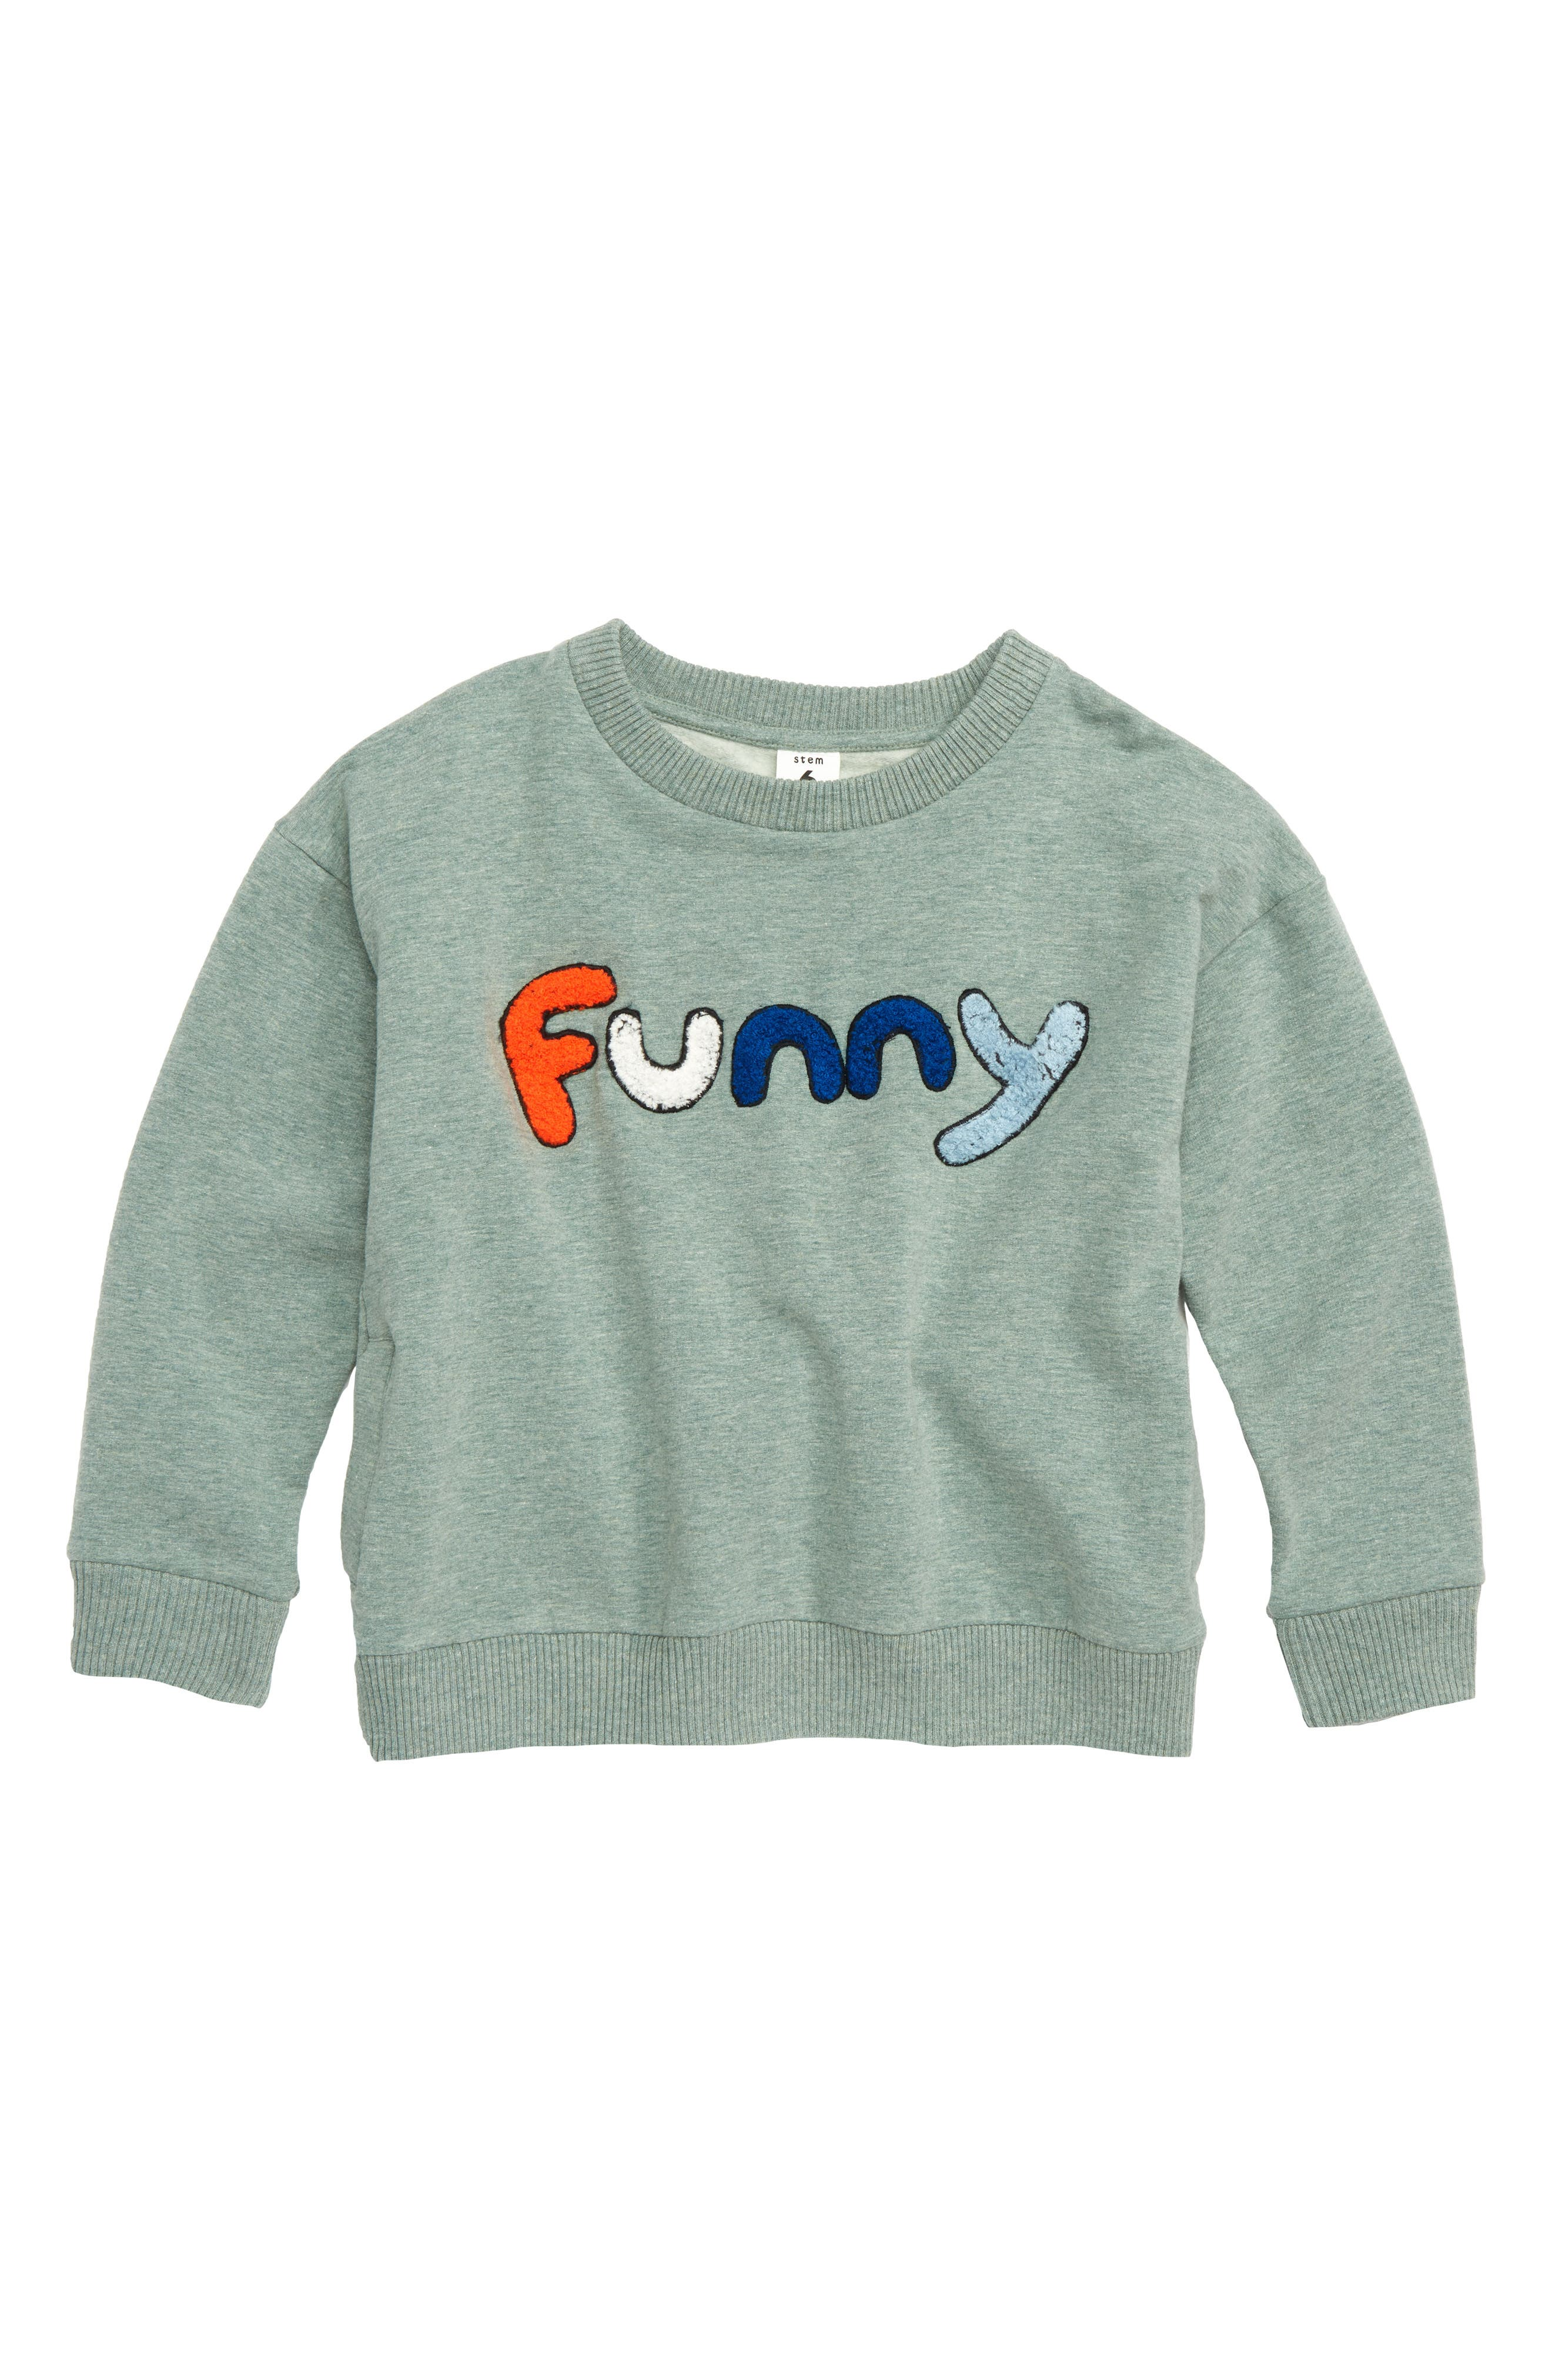 Funny 3D Graphic Sweatshirt,                         Main,                         color, GREEN AGAVE HEATHER FUNNY